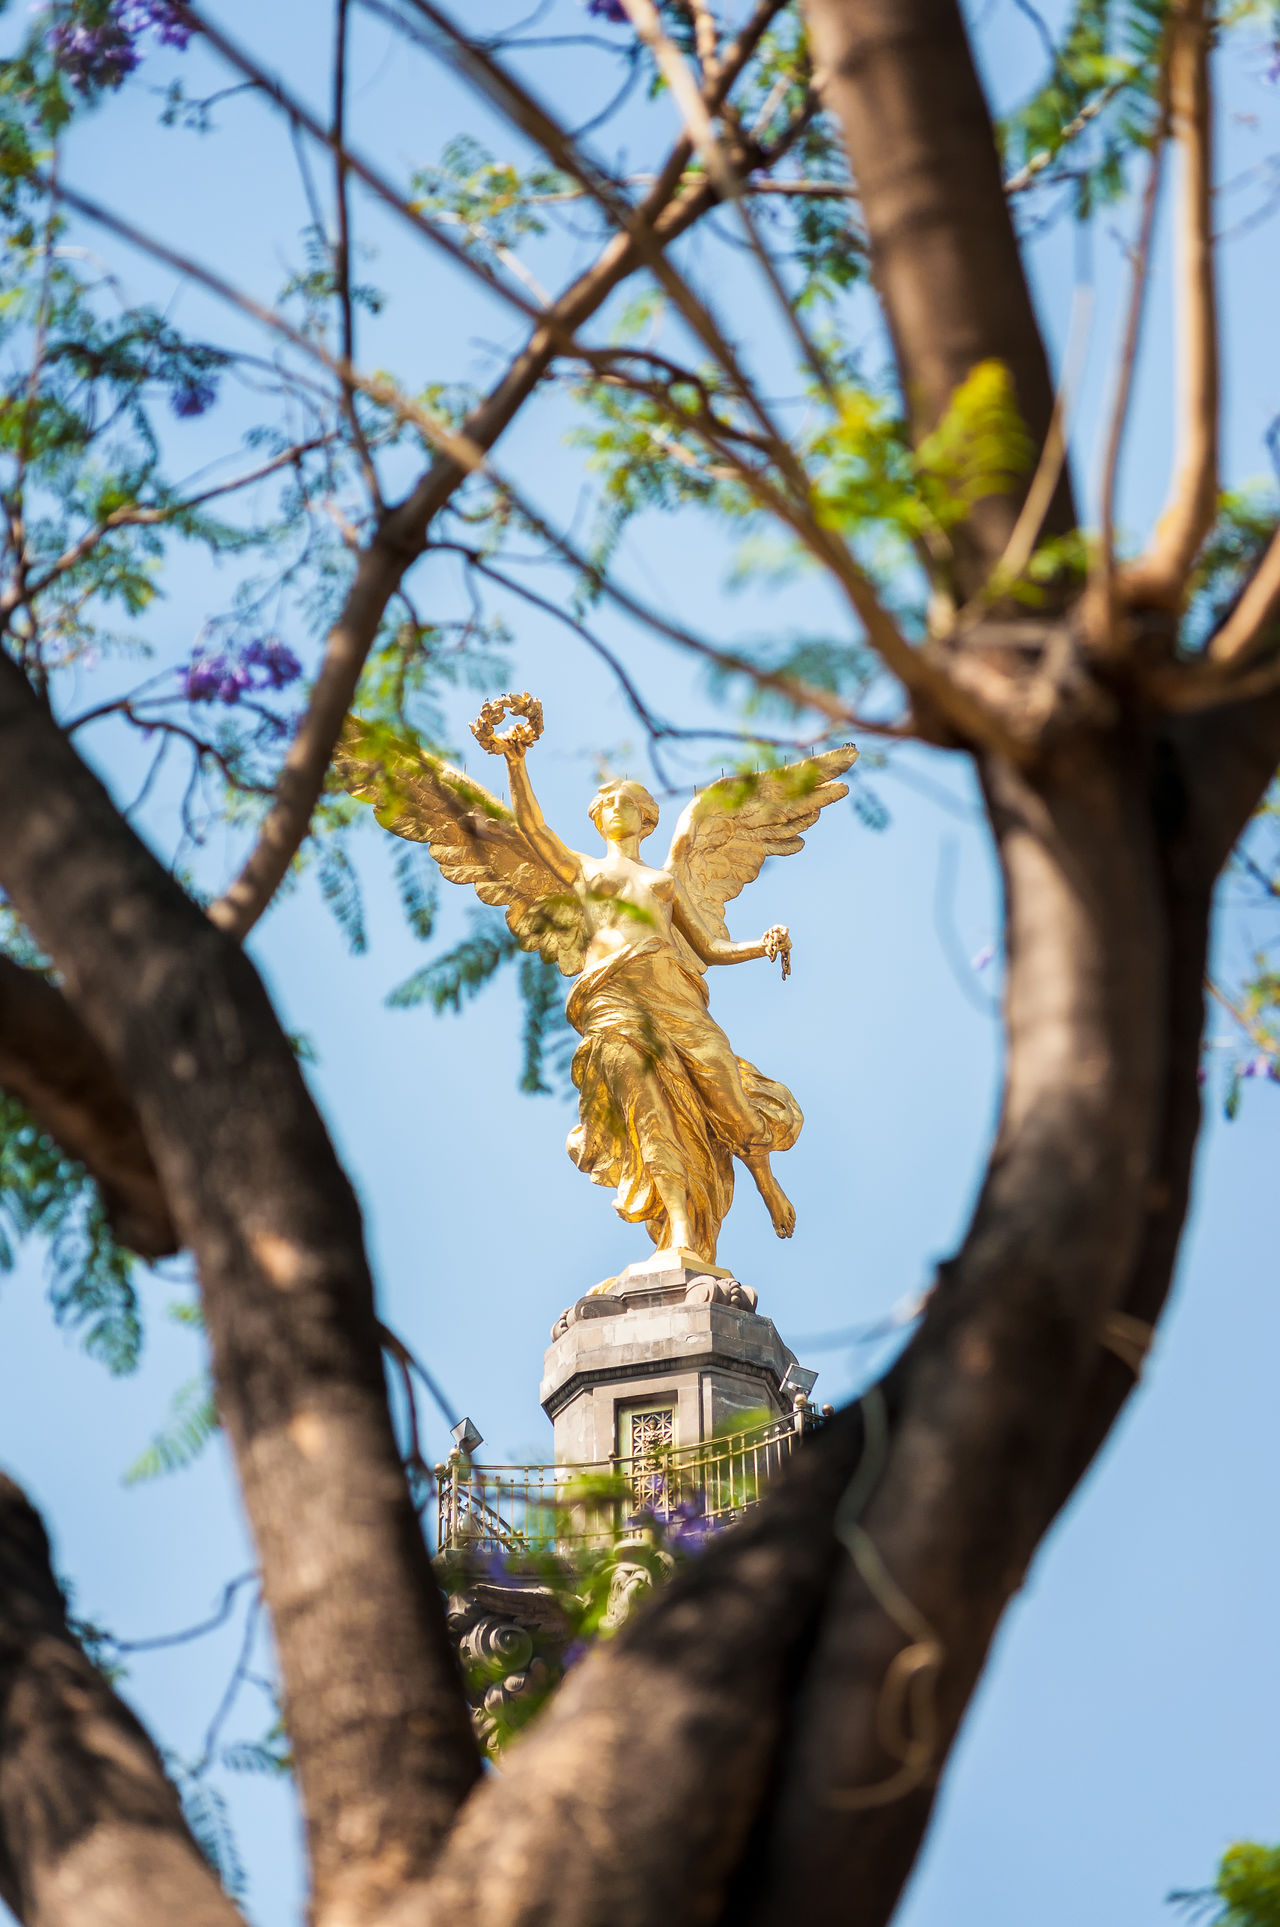 Angel of Independence monument in Mexico City framed by a tree Angel Branch City Df Distrito Downtown Federal Gold Colored Icon Independence Landmark Latin Mexico Mexicocity  Monument Old Outdoors Paseo Reforma Sculpture Square Statue Symbol Tree Urban